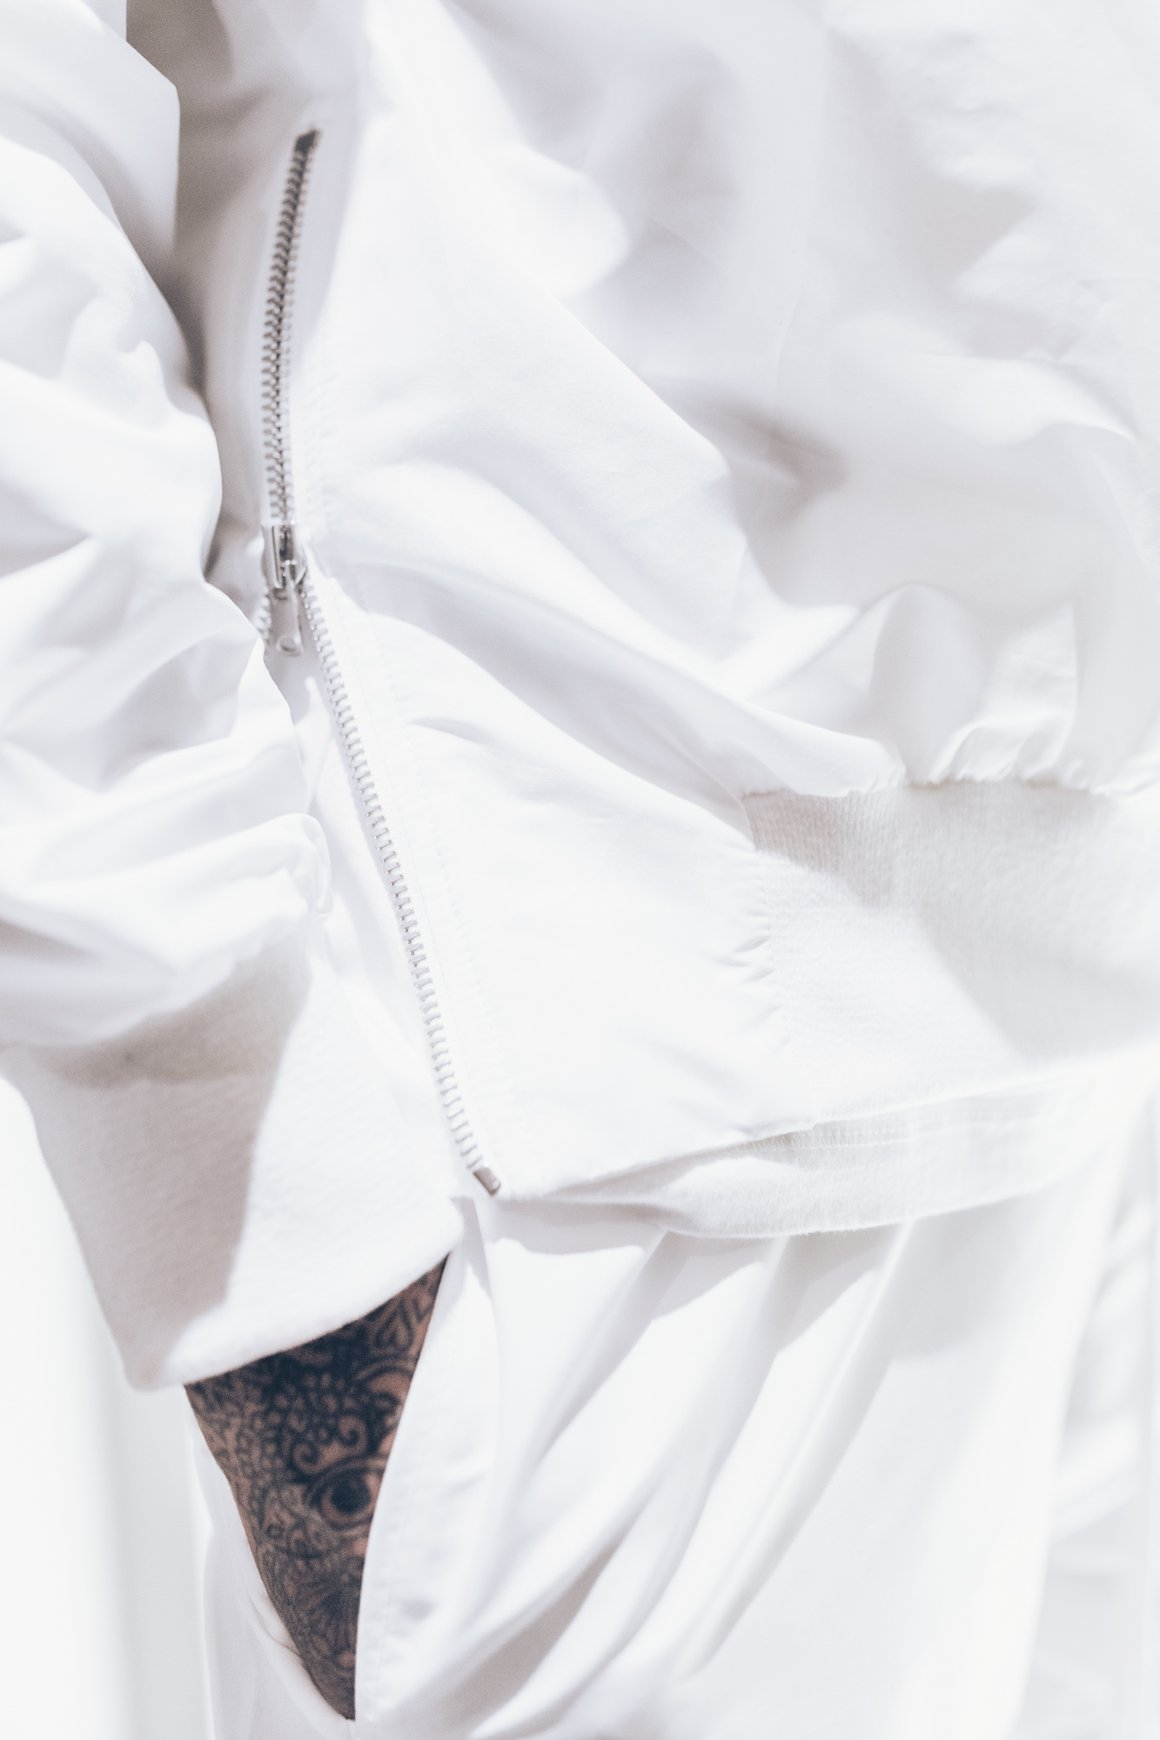 KITH Fear of God Capsule Collection